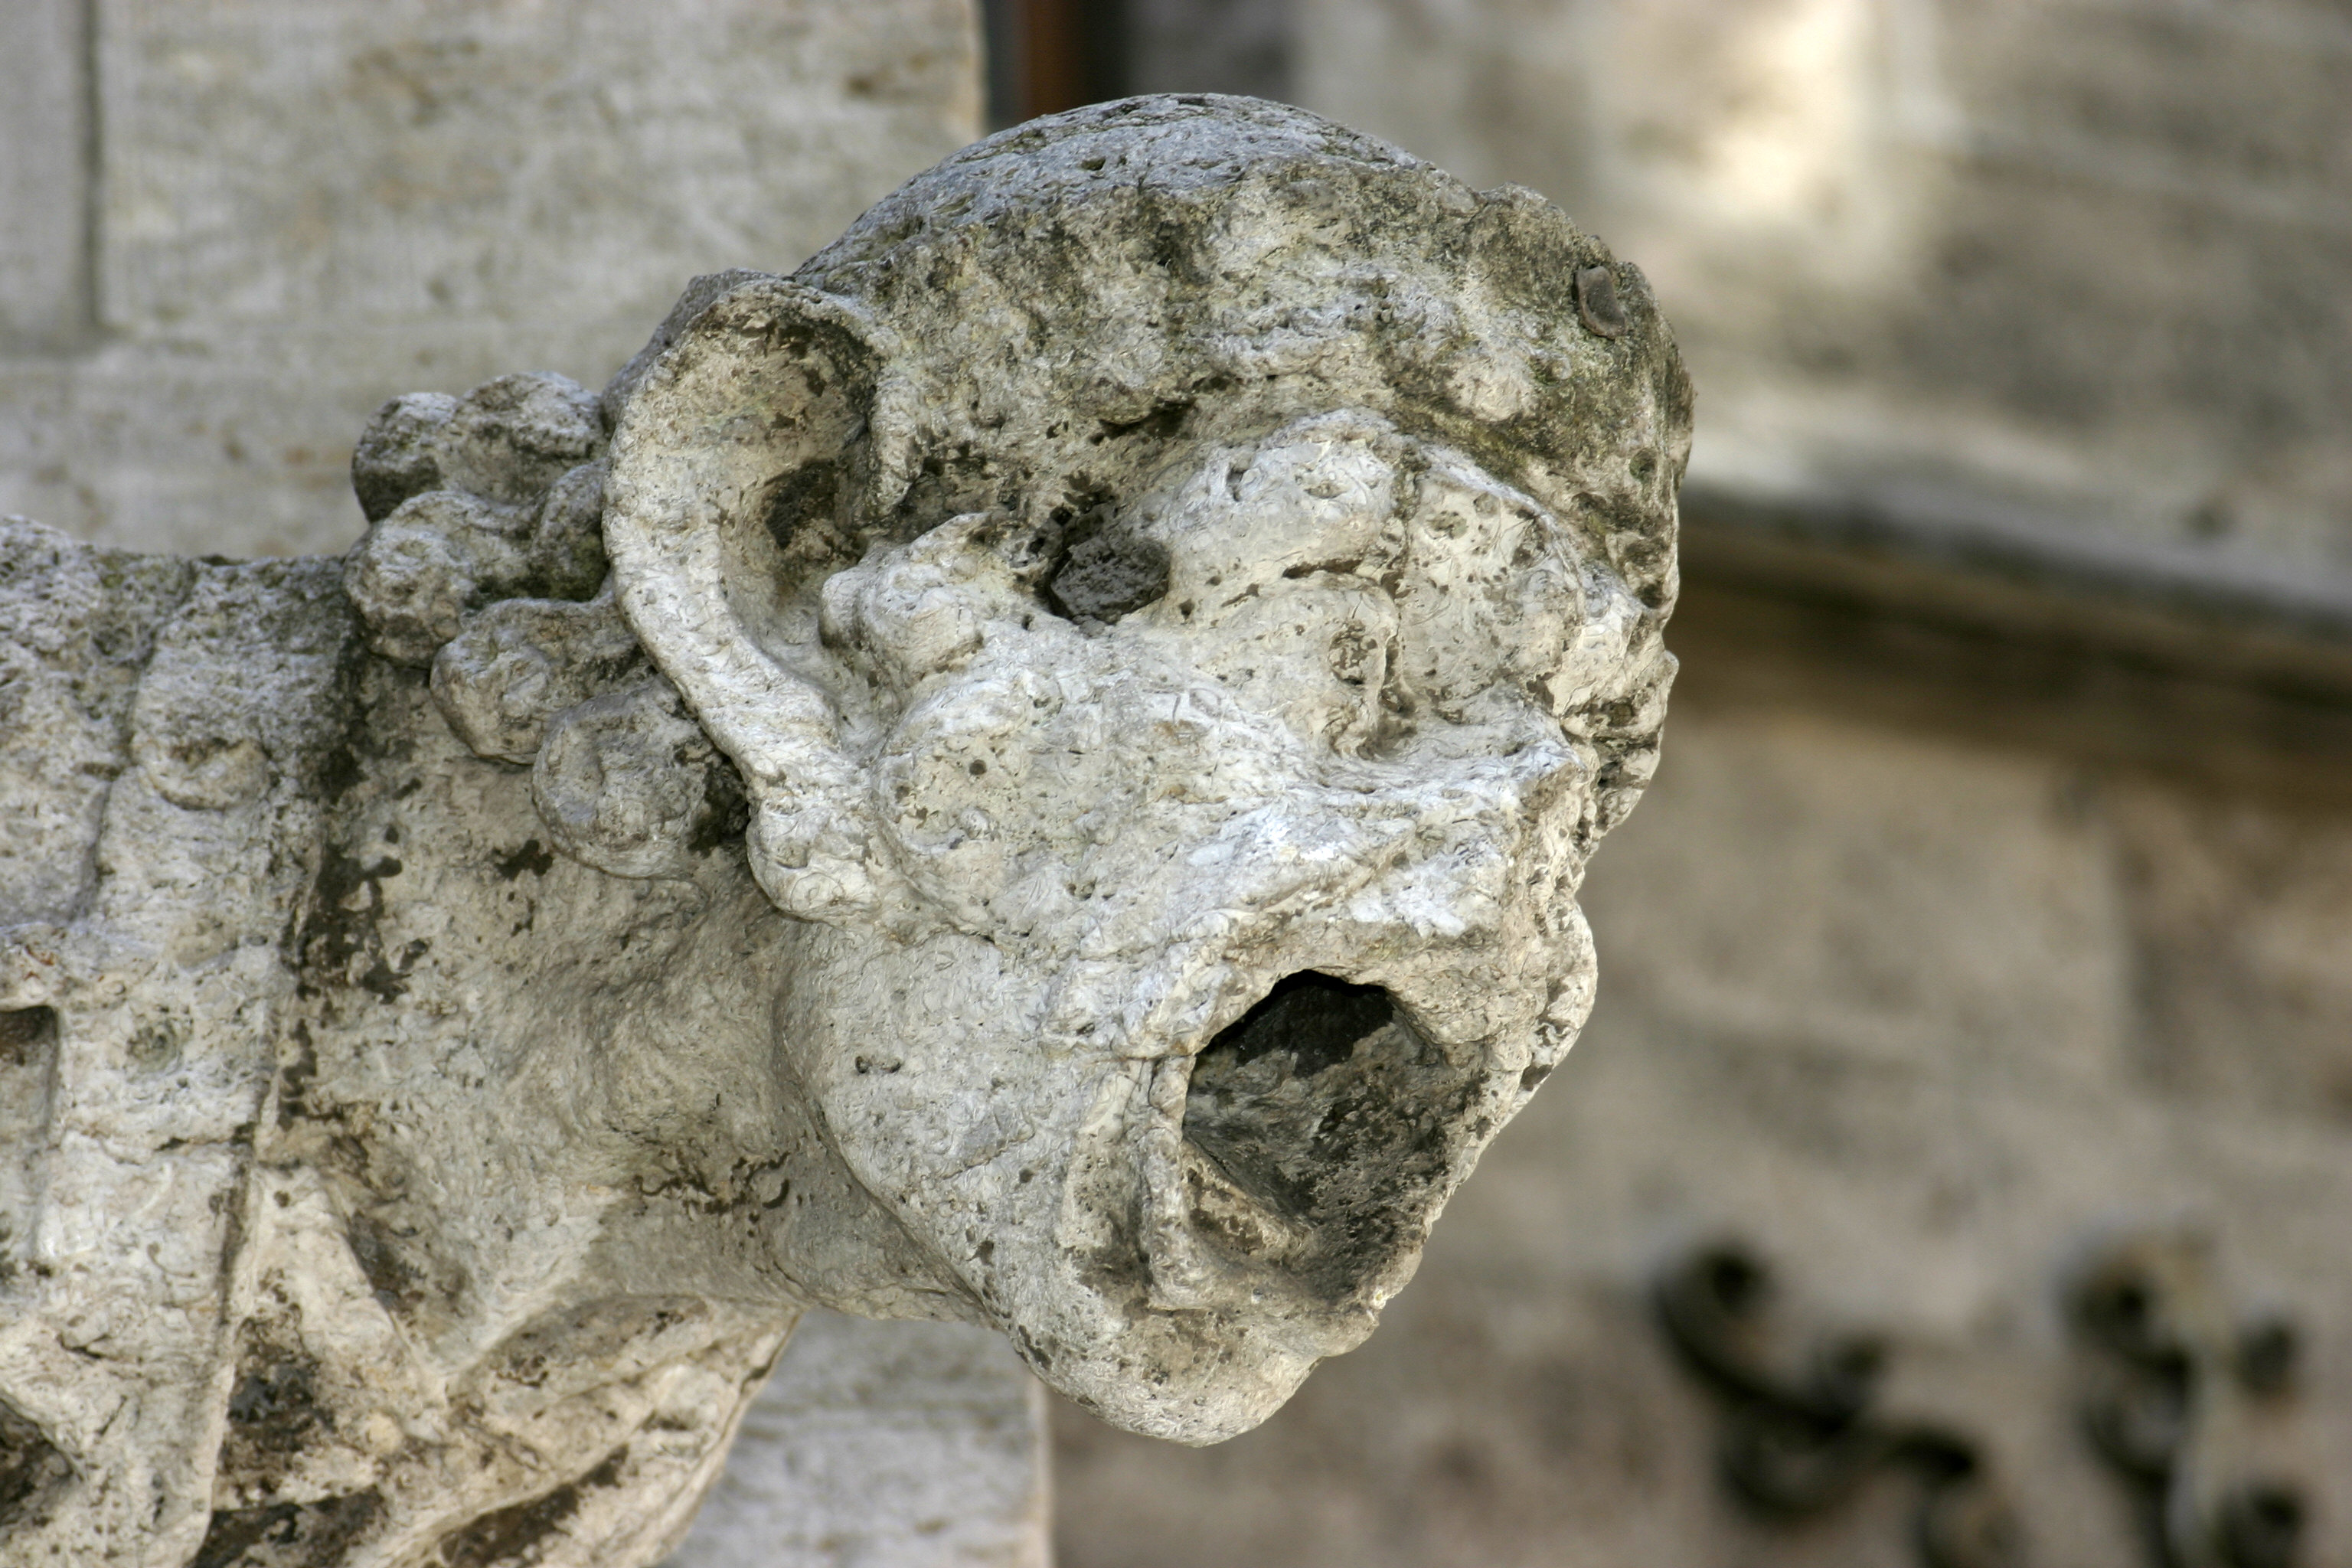 Acid rain damaged gargoyle. Image and caption courtesy Nino Barbieri via Wikimedia Commons.